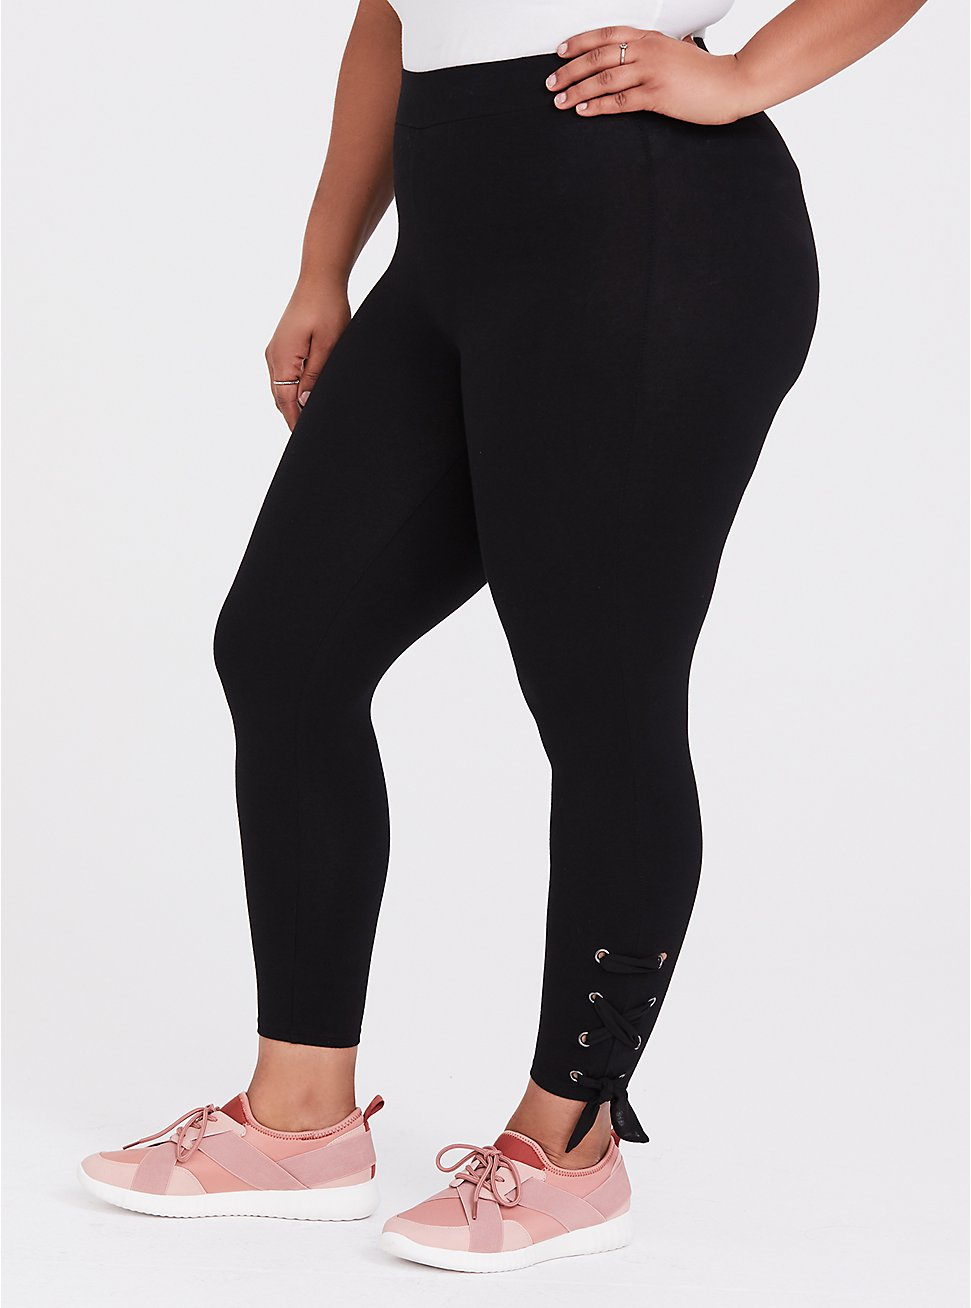 Cop Premium Legging - Self Tie Lace-Up Black, BLACK, hi-res